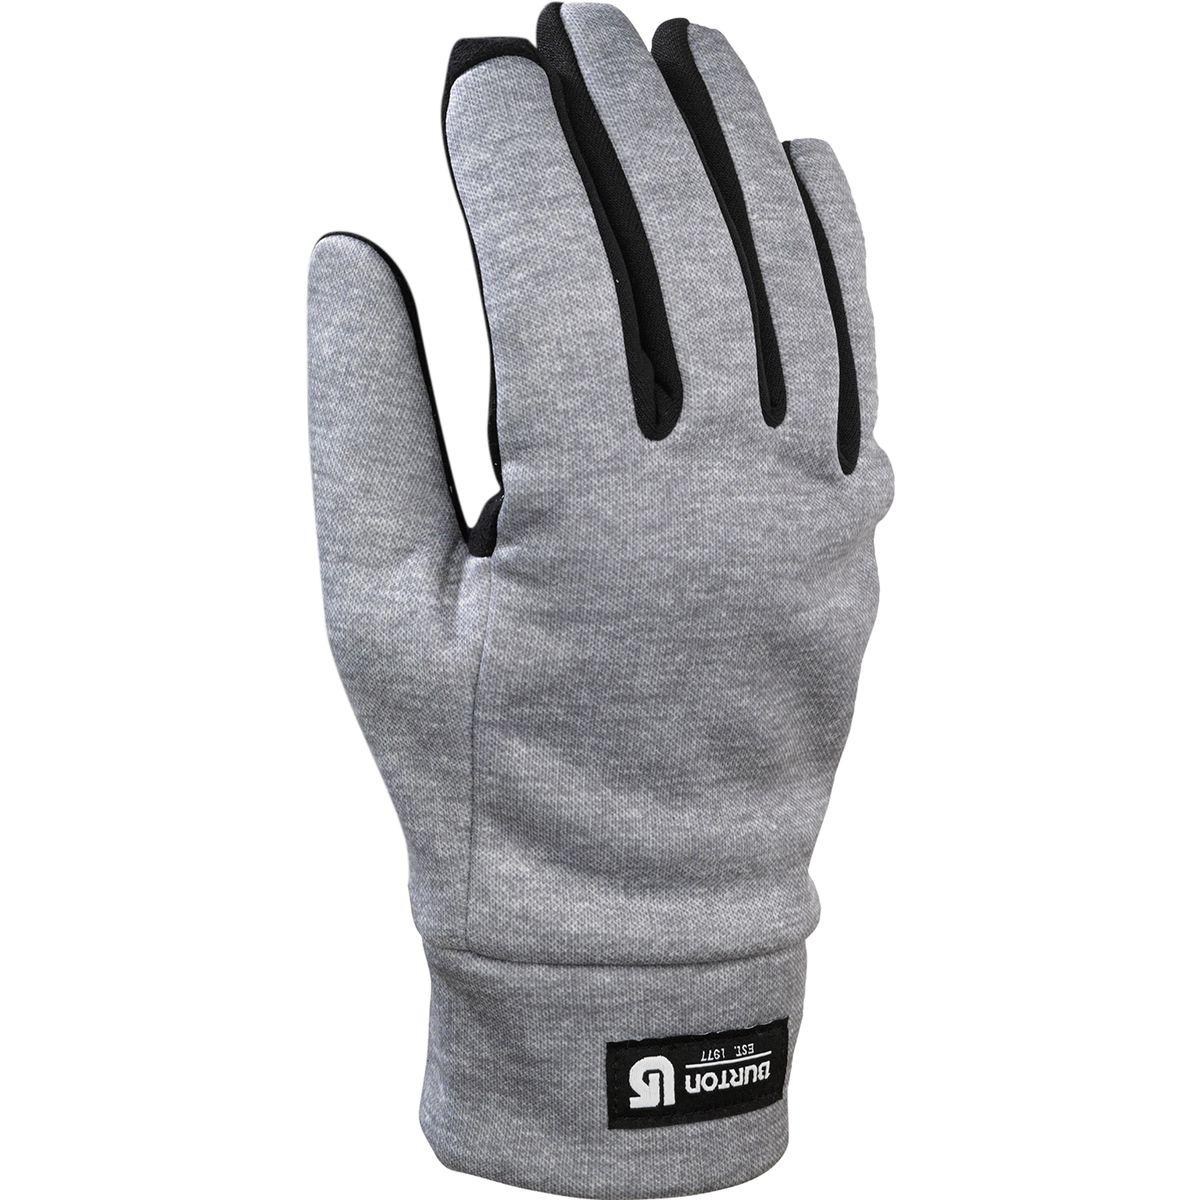 ac119a594 Burton Touch N Go Glove Liner in Gray for Men - Lyst